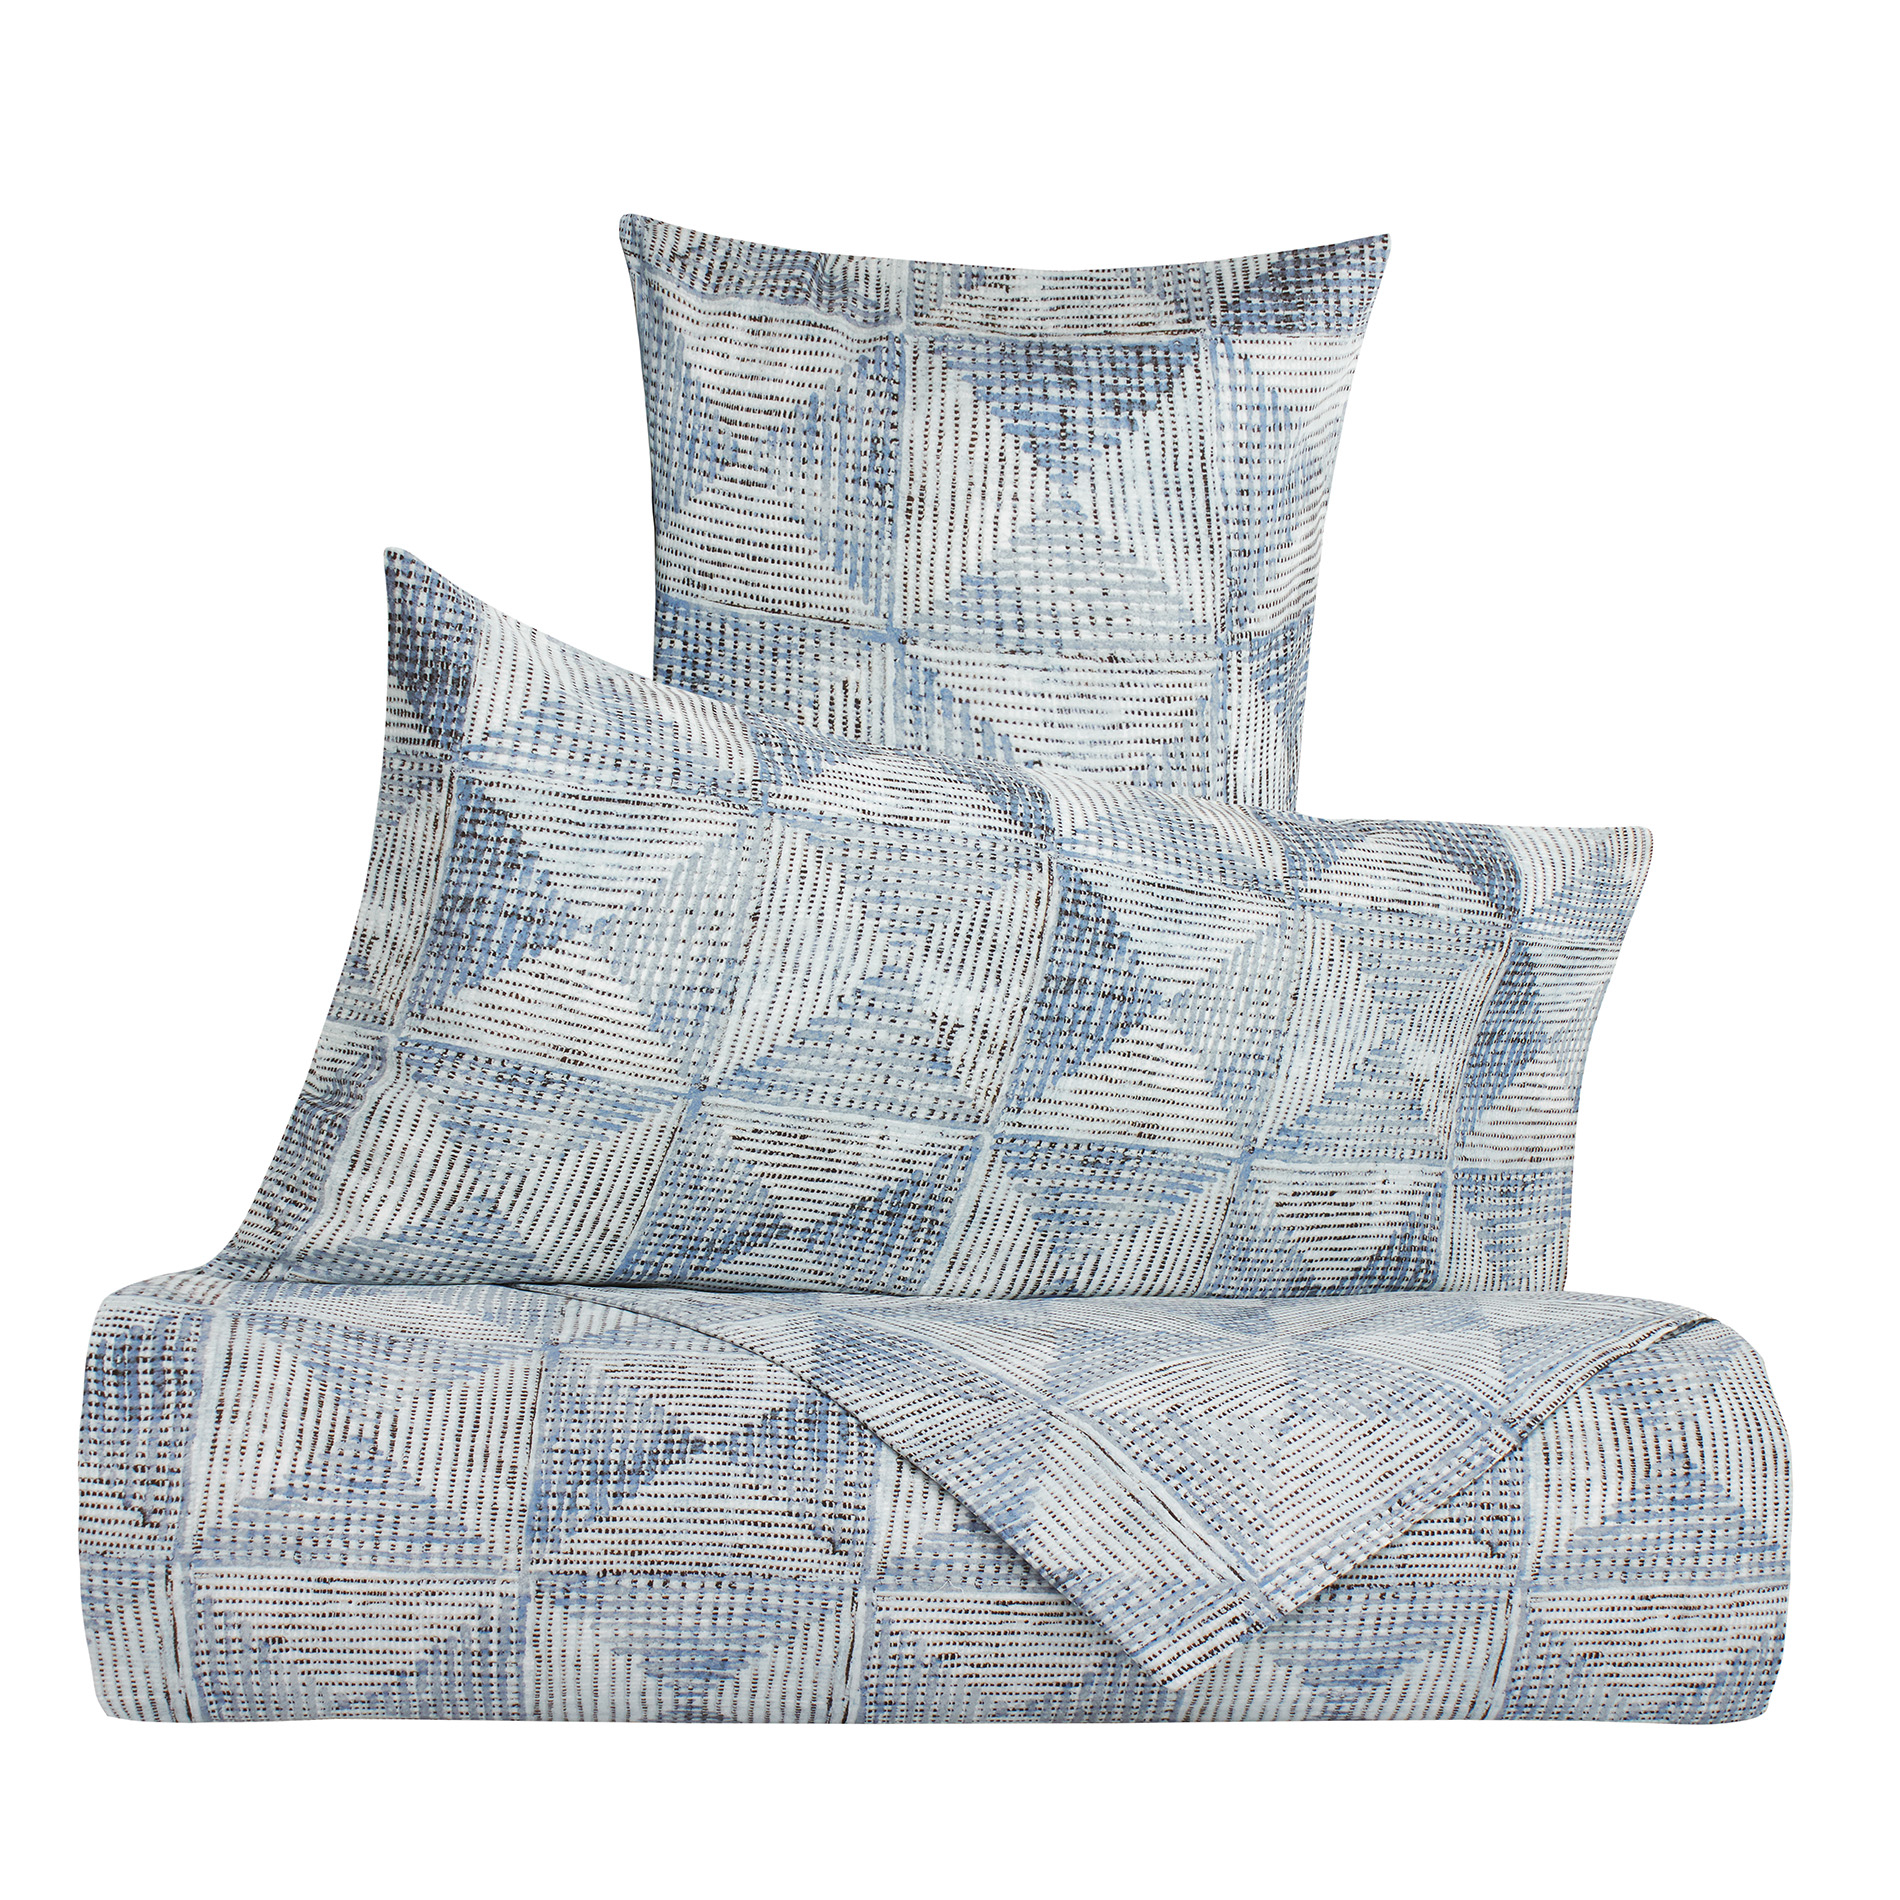 Duvet Cover In 100 Cotton Percale With Geometric Pattern Coincasa